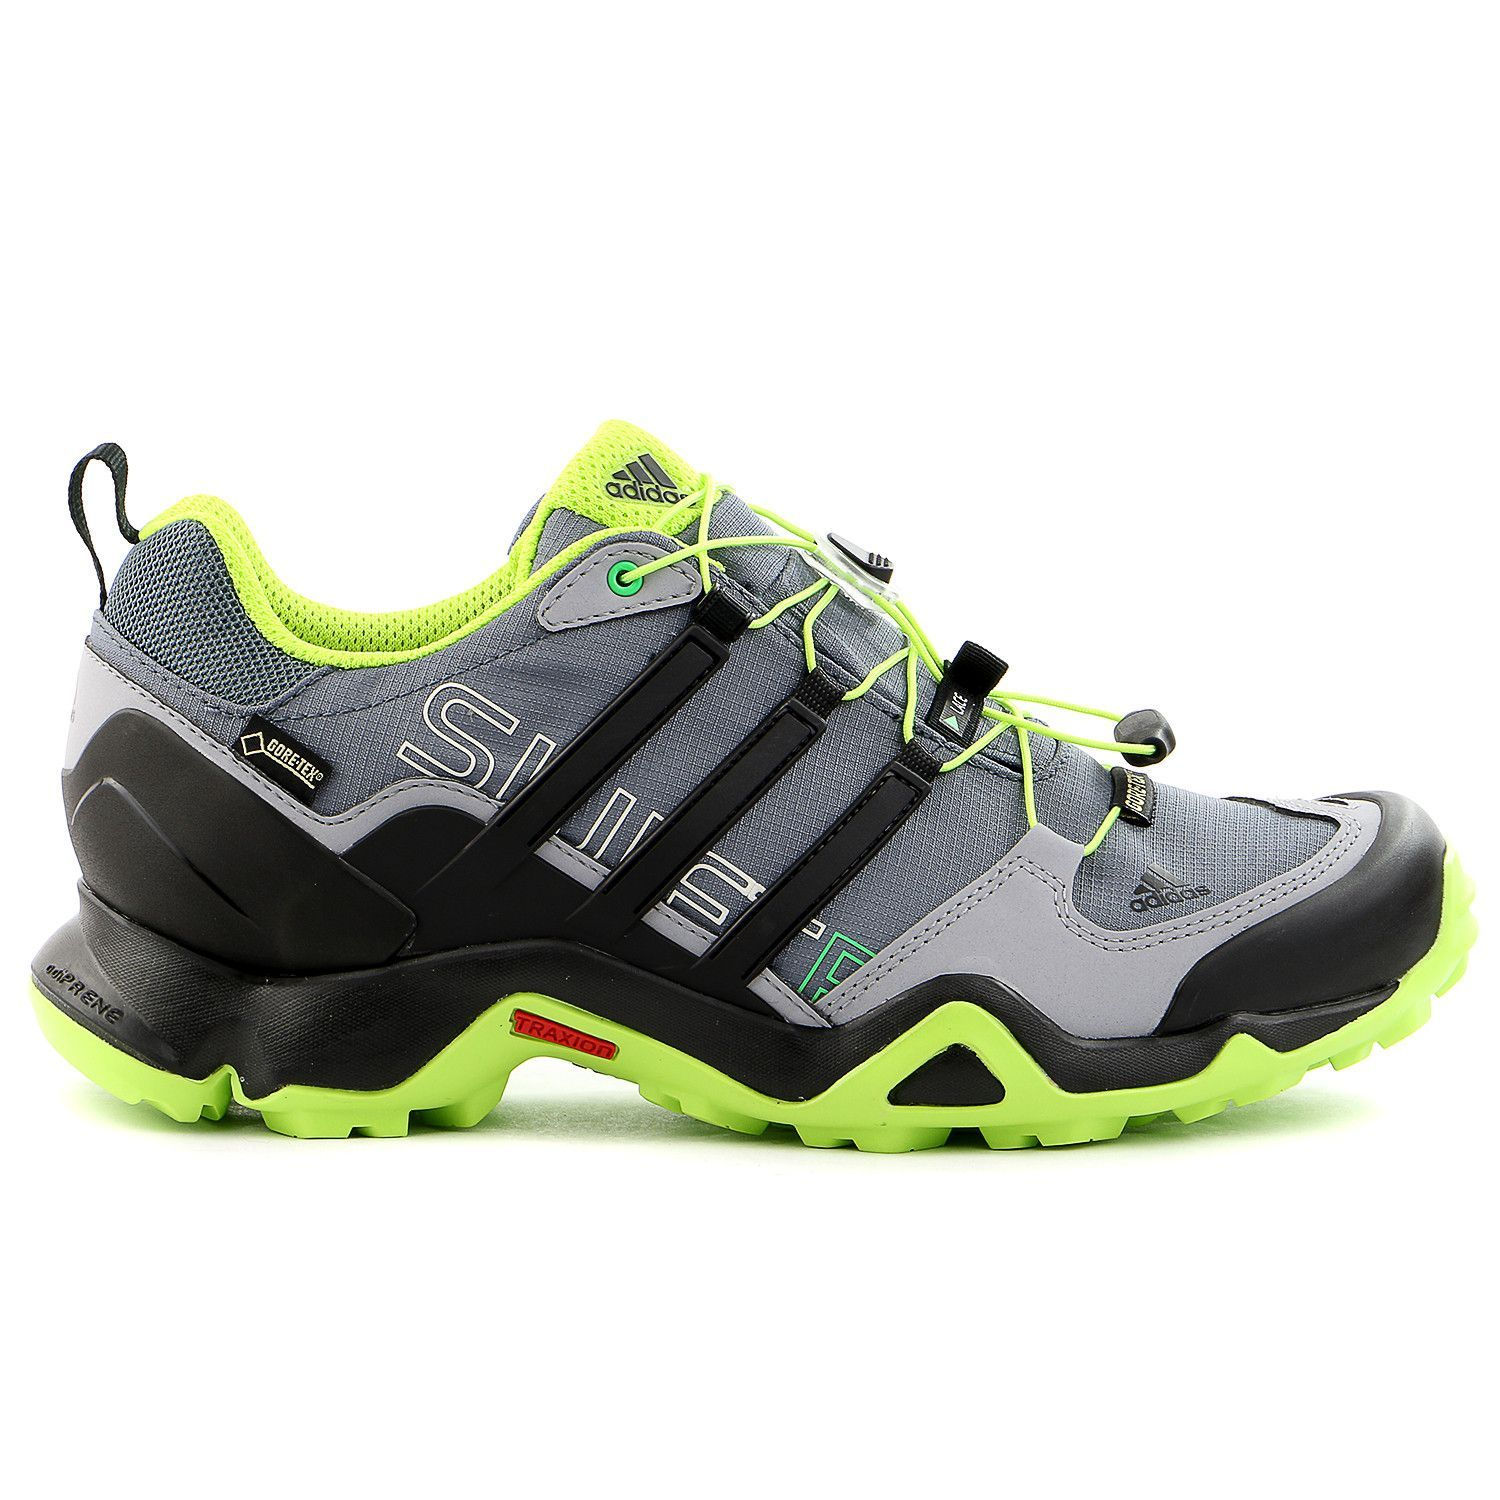 Adidas Terrex Swift R GTX Outdoor Hiking Shoe - Mens